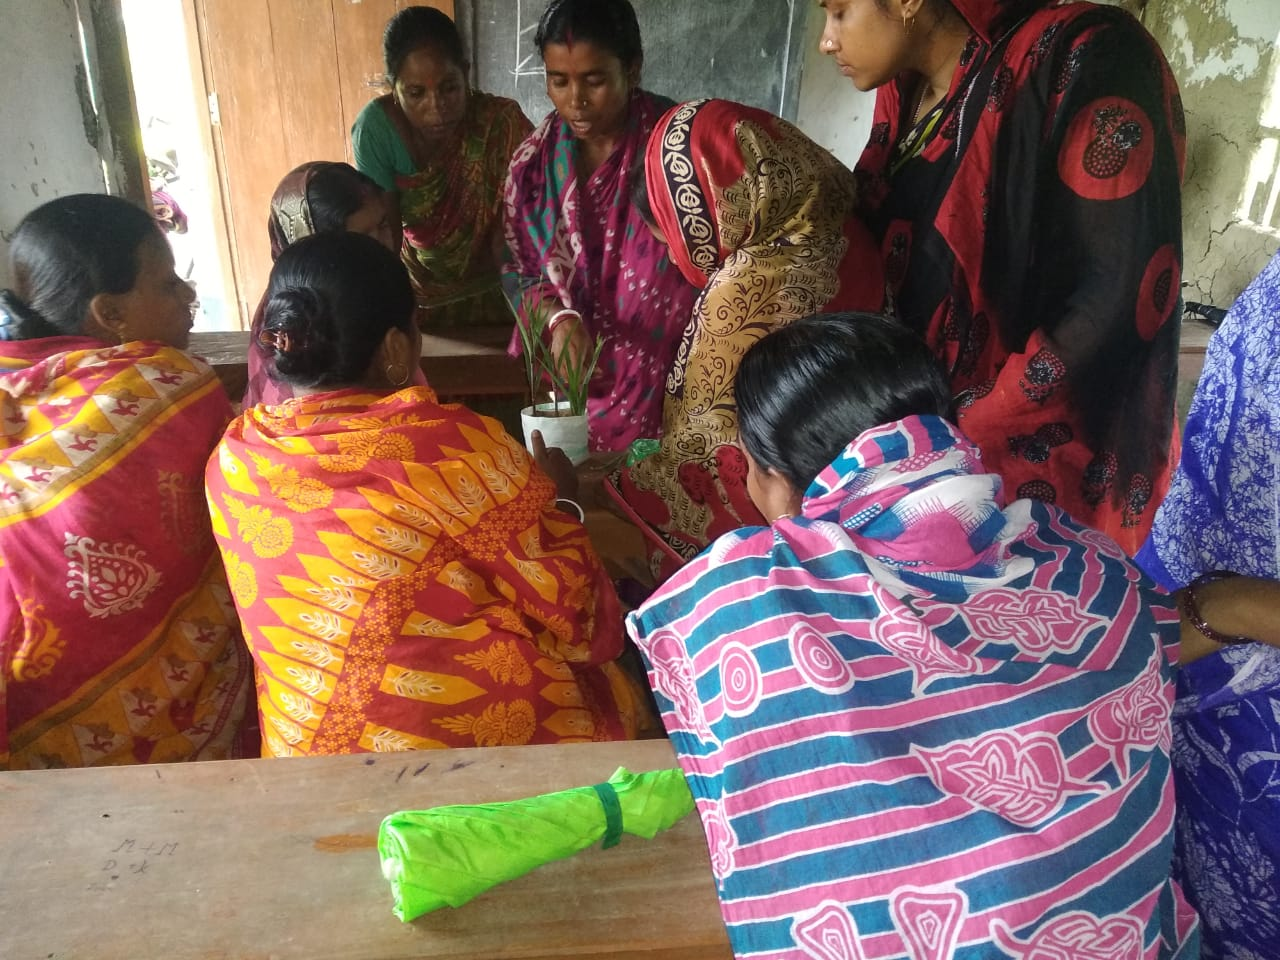 Mukti Horticulturalist And Trainer Mrs. Kabita Mondal Is Training The Trainees On Grafting And Cutting